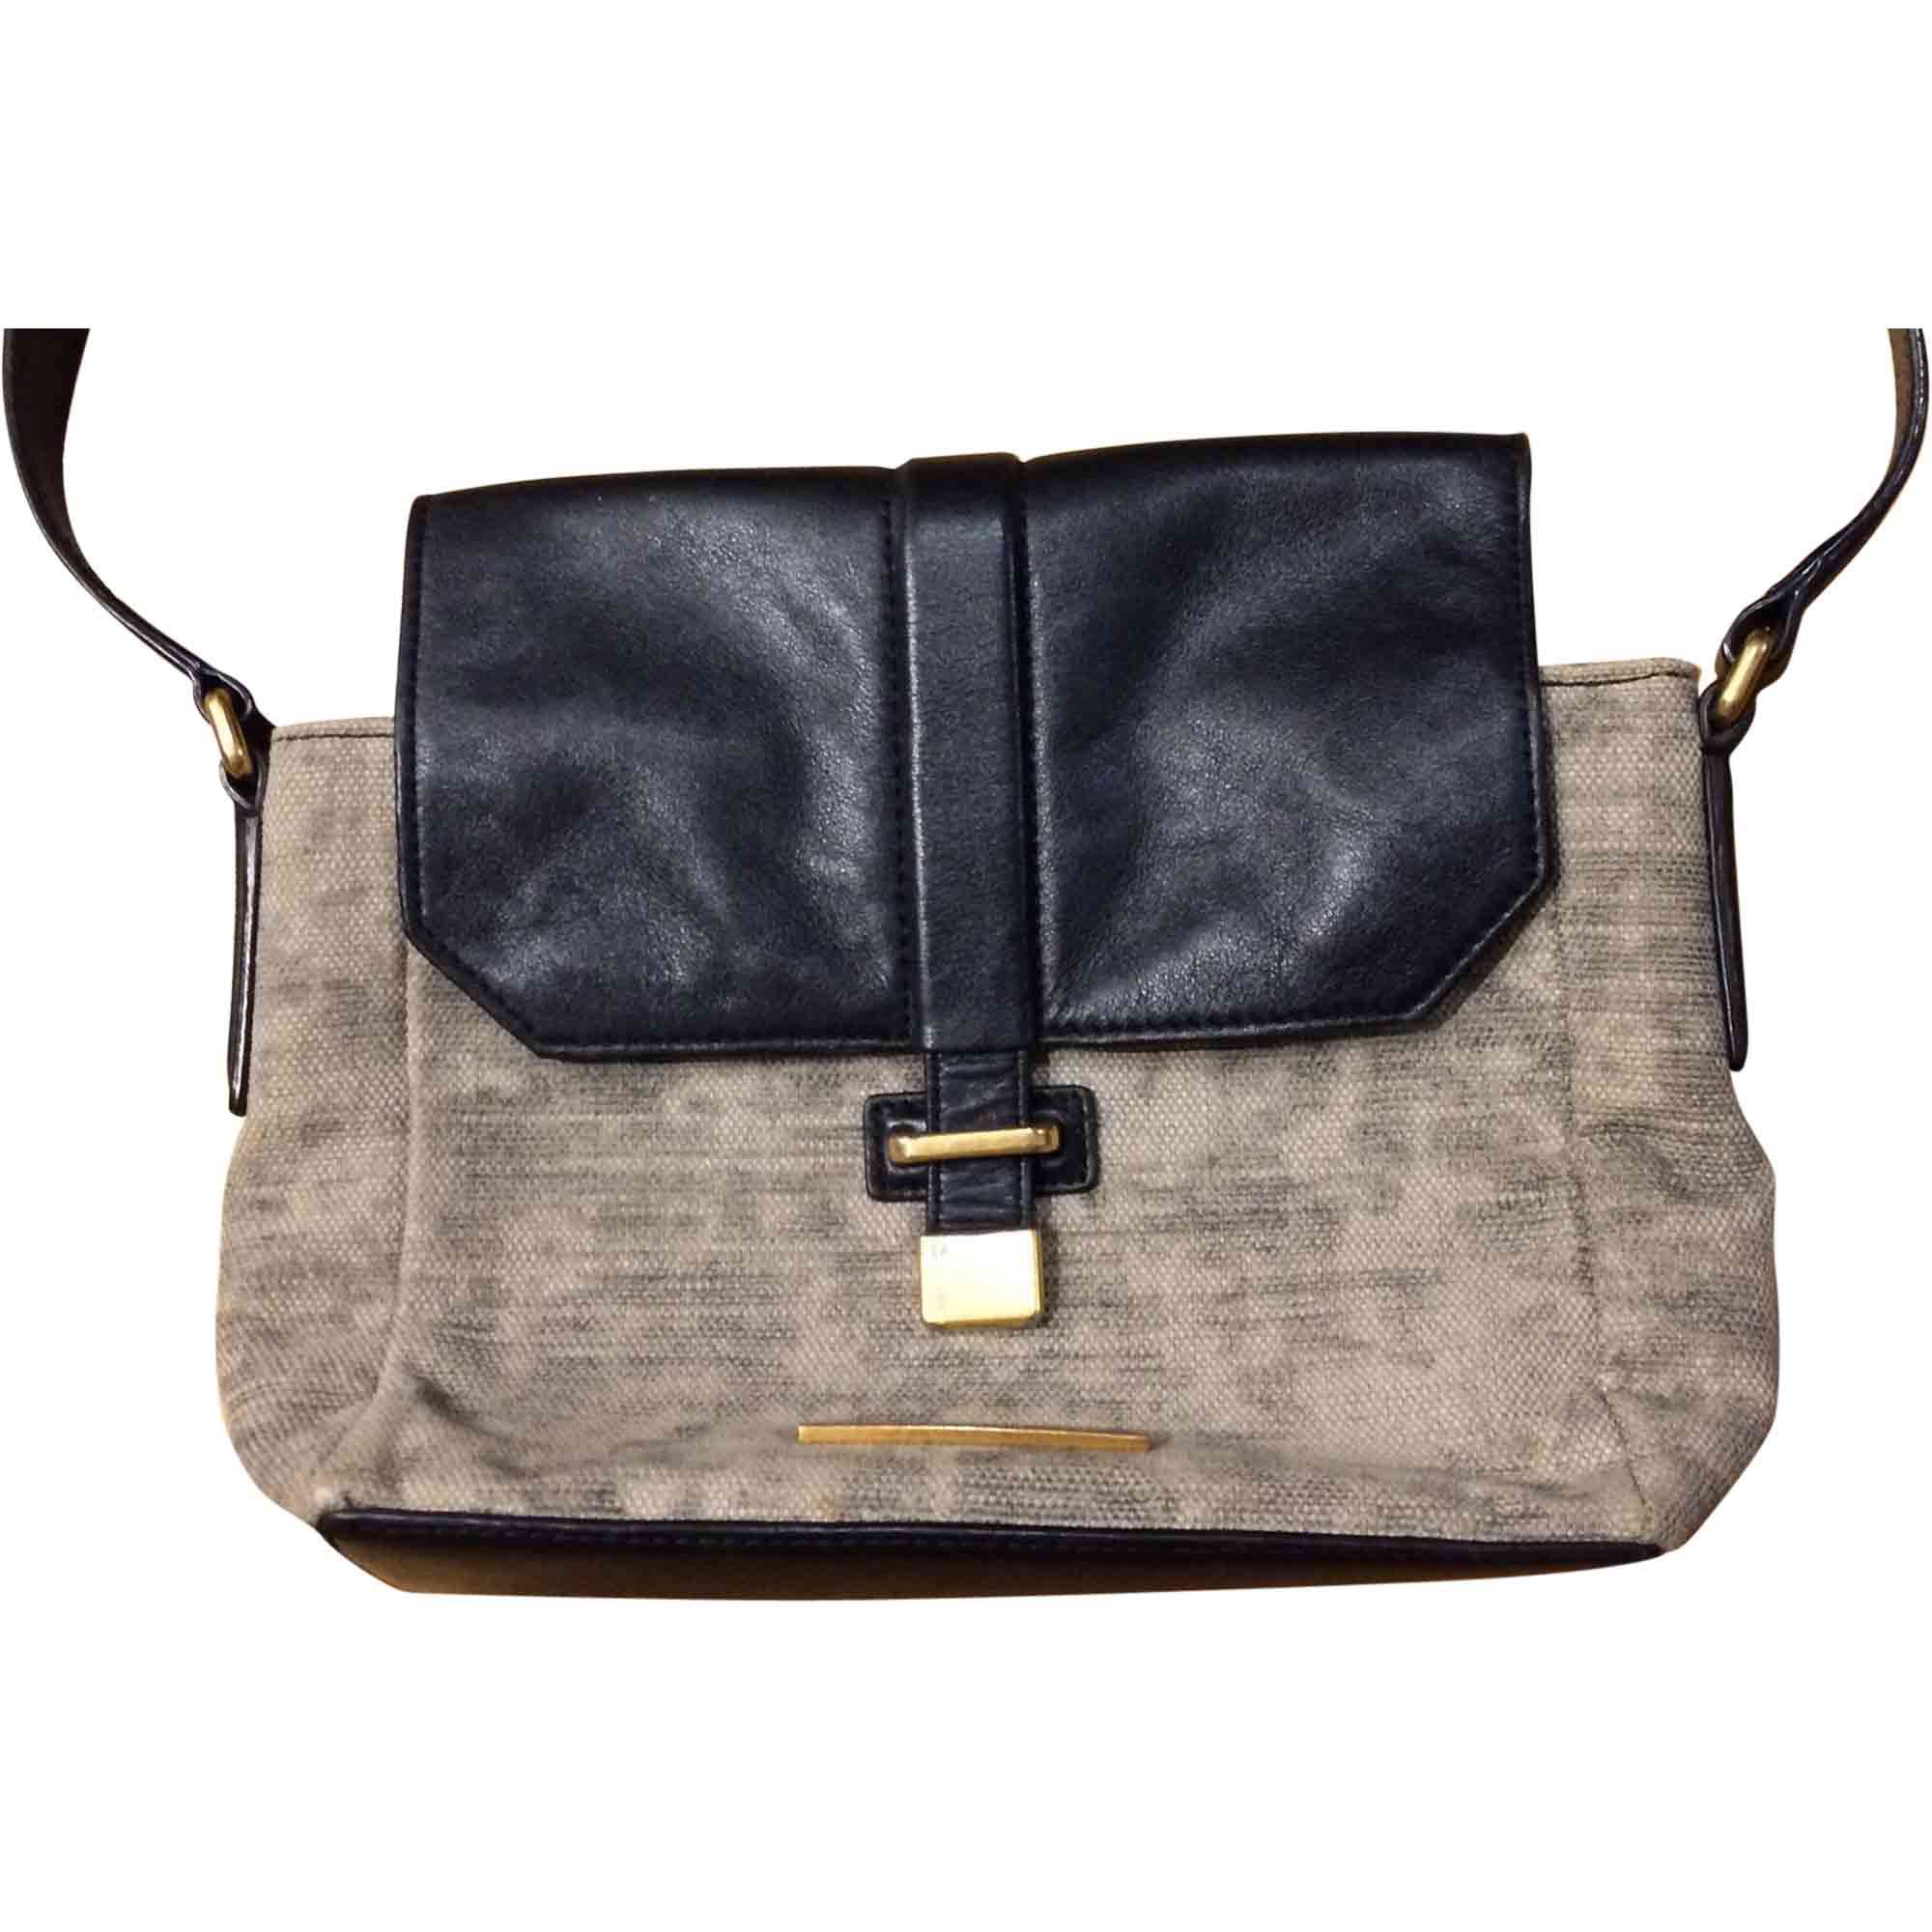 09d649c3c3 Borsa a tracolla in tessuto MARC BY MARC JACOBS nero - 5737509